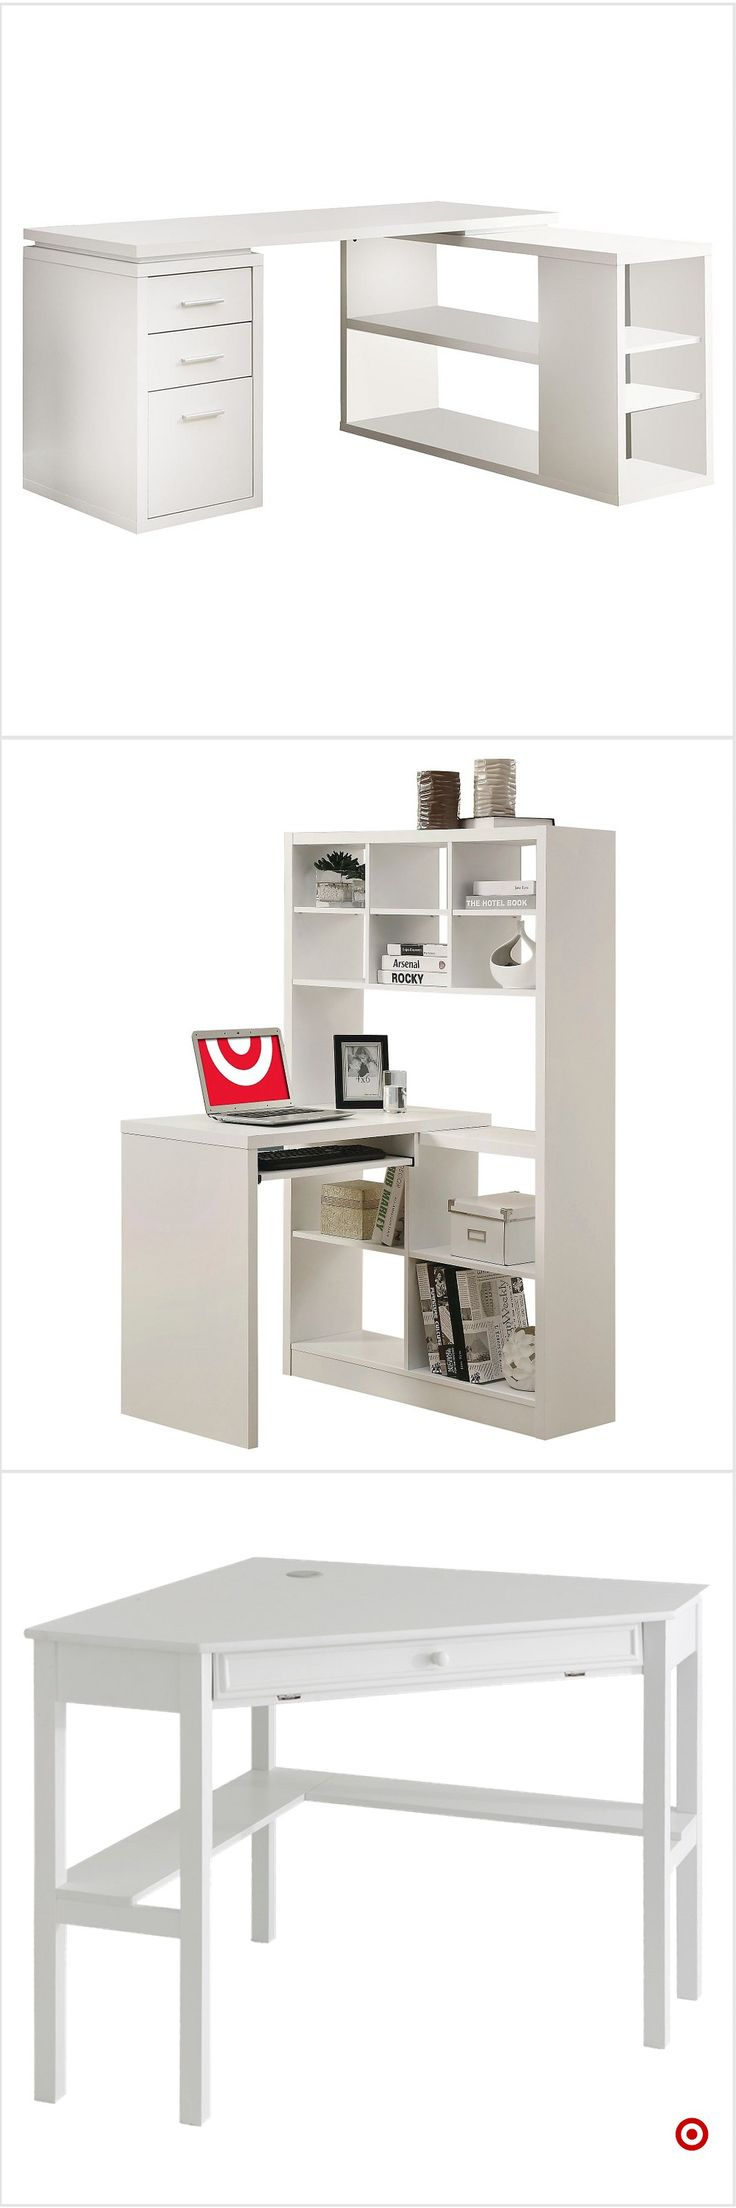 Shop Target for corner desk you will love at great low prices. Free shipping on orders of $35+ or free same-day pick-up in store.